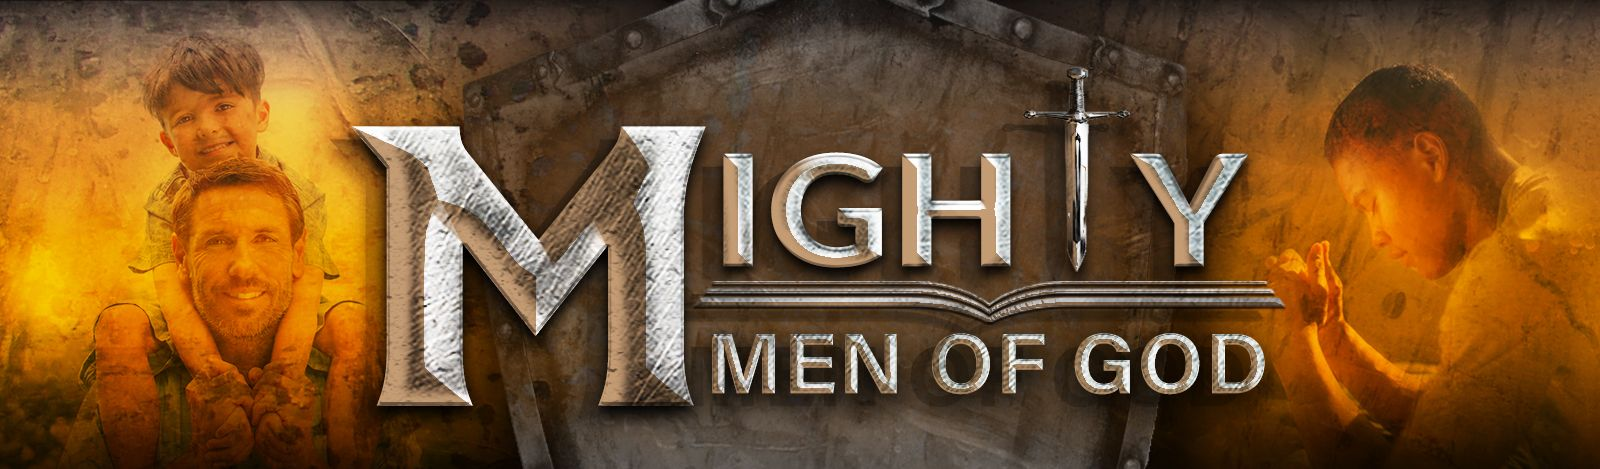 Where are God's Mighty Men?